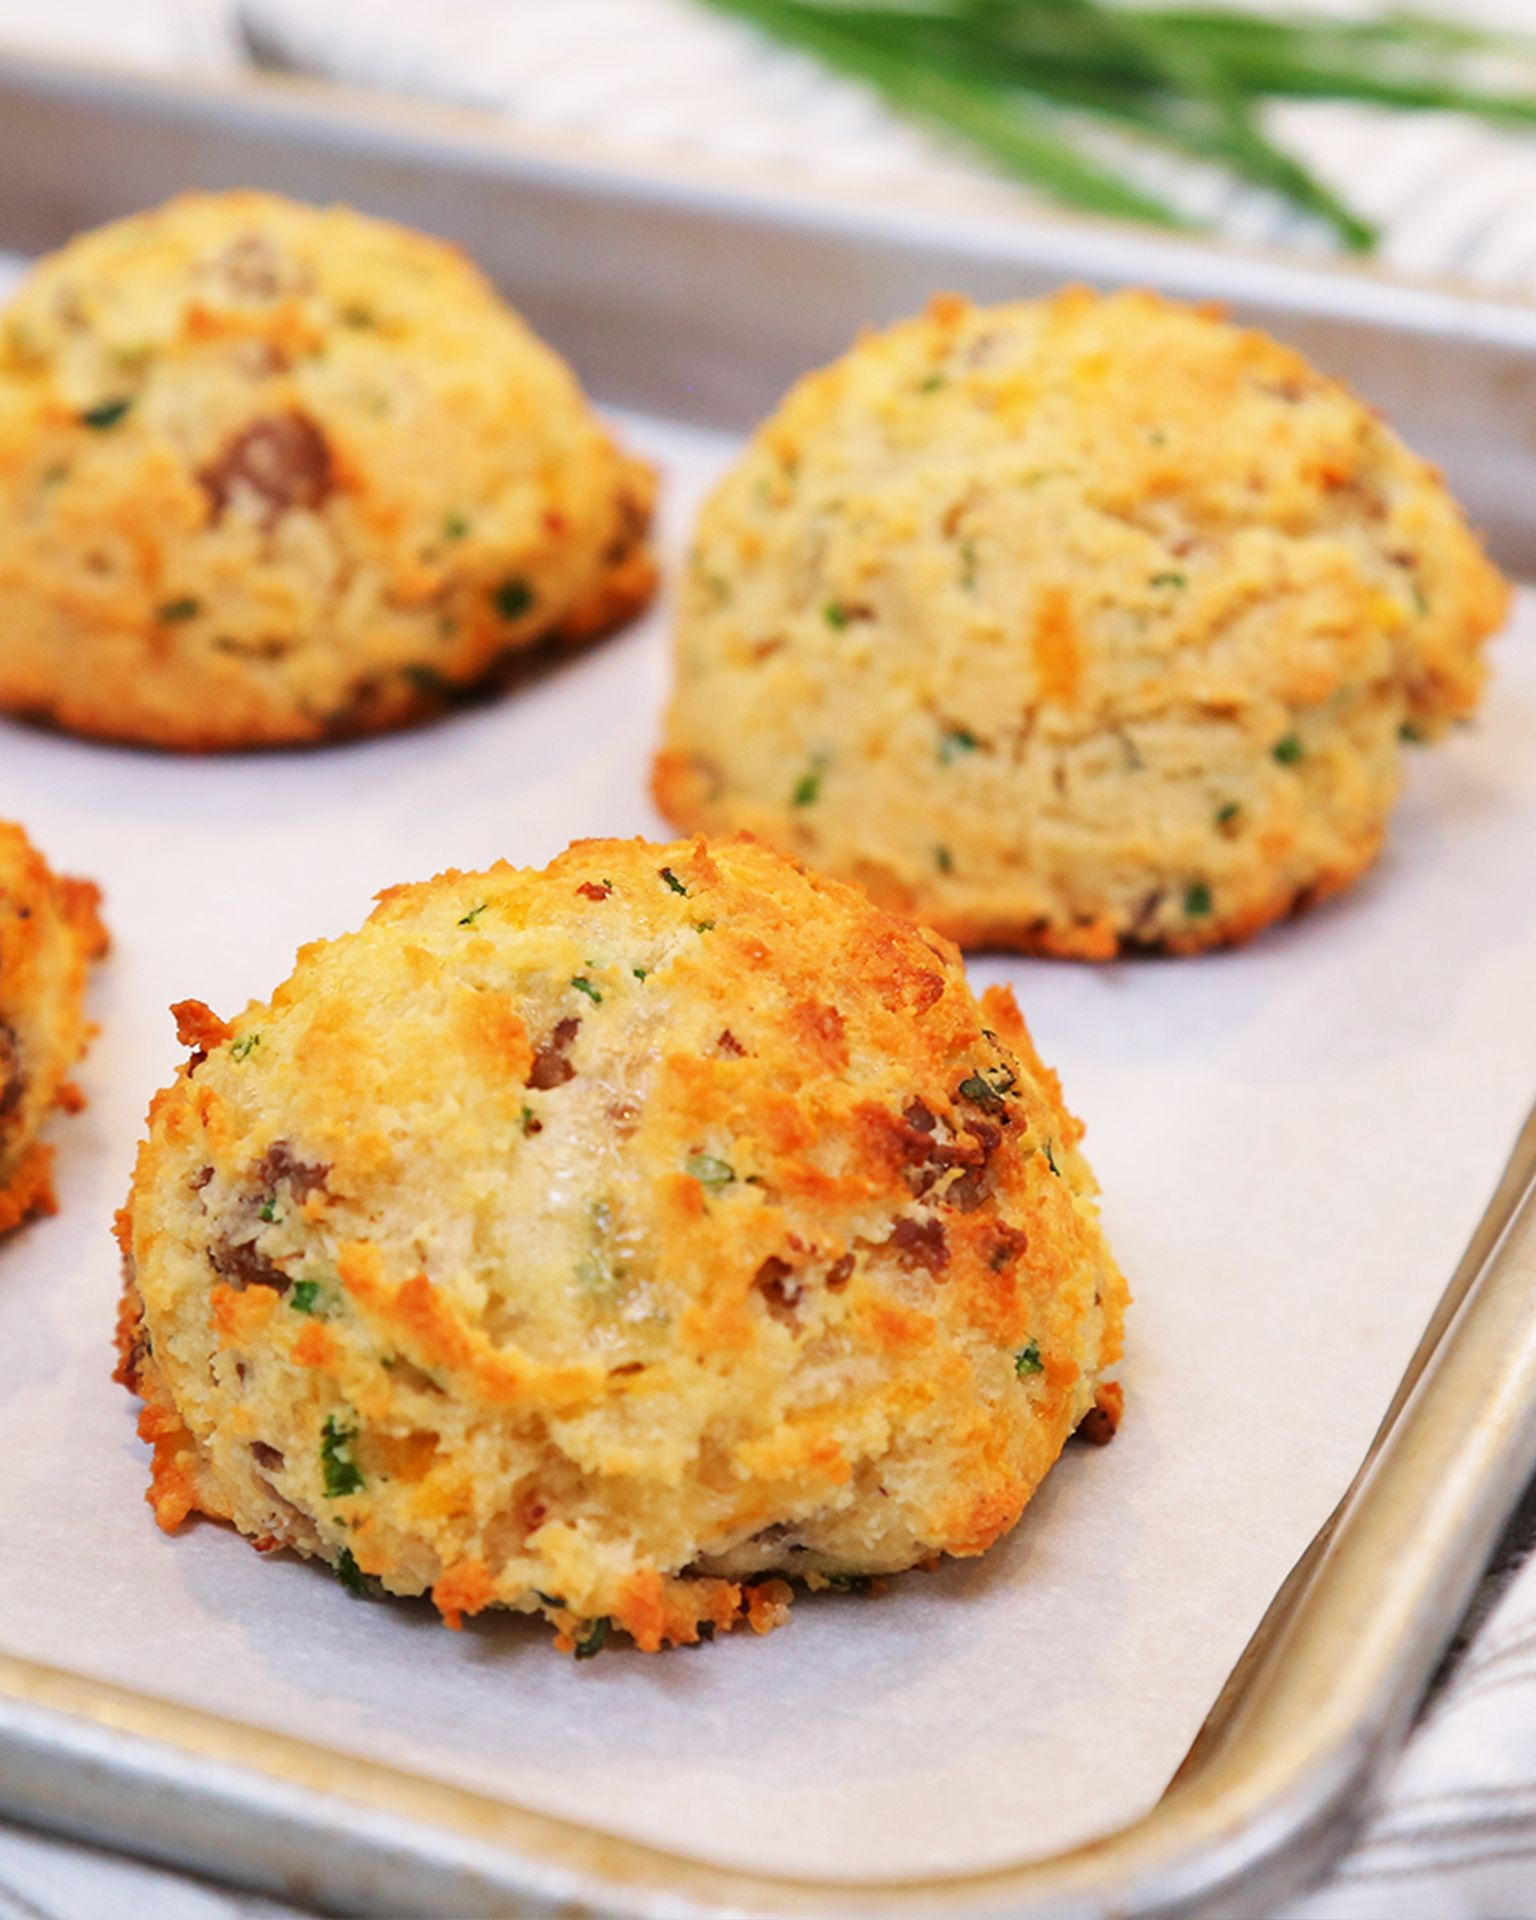 low carb sausage cheddar chive breakfast biscuits recipe breakfast breakfast biscuits delicious bread low carb sausage cheddar chive breakfast biscuits